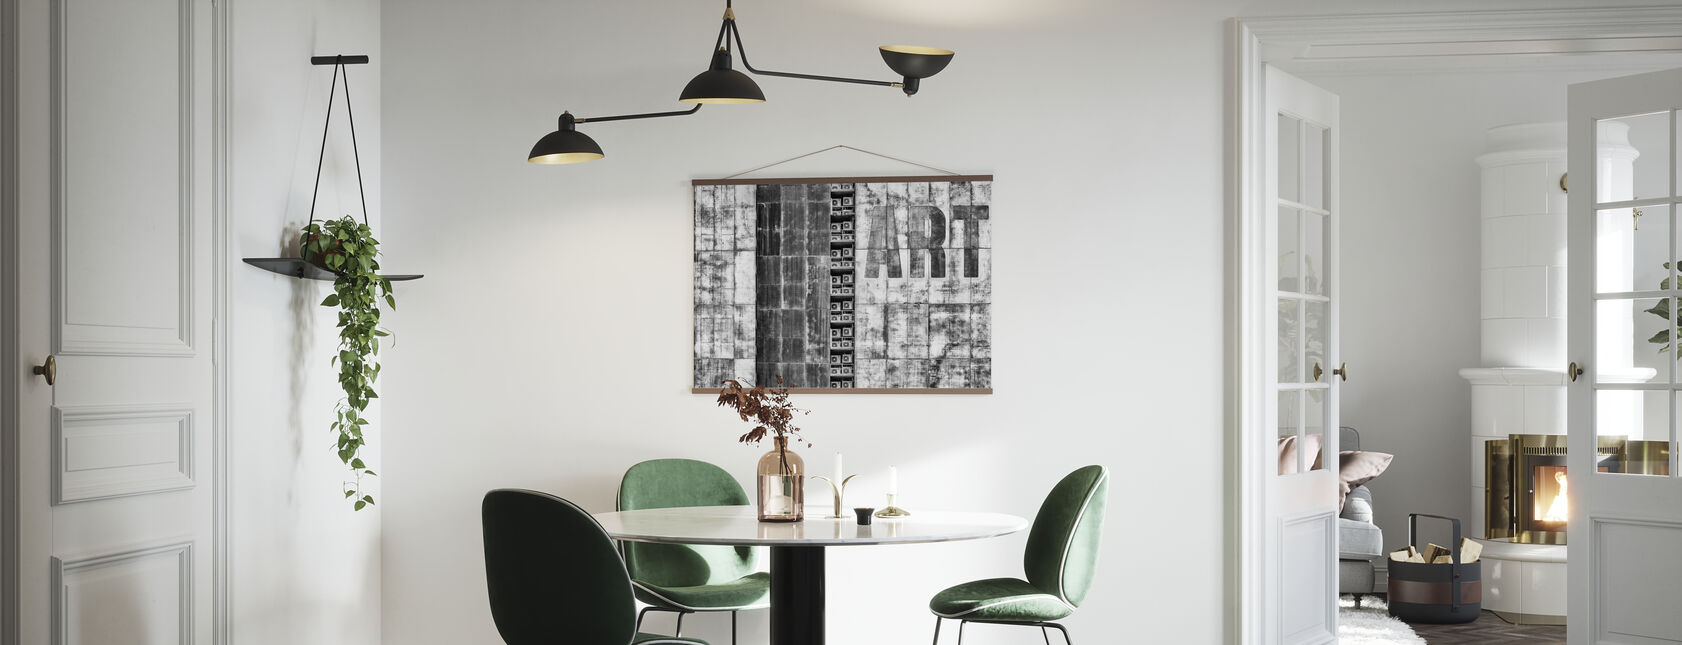 Gritty Palace - Poster - Kitchen